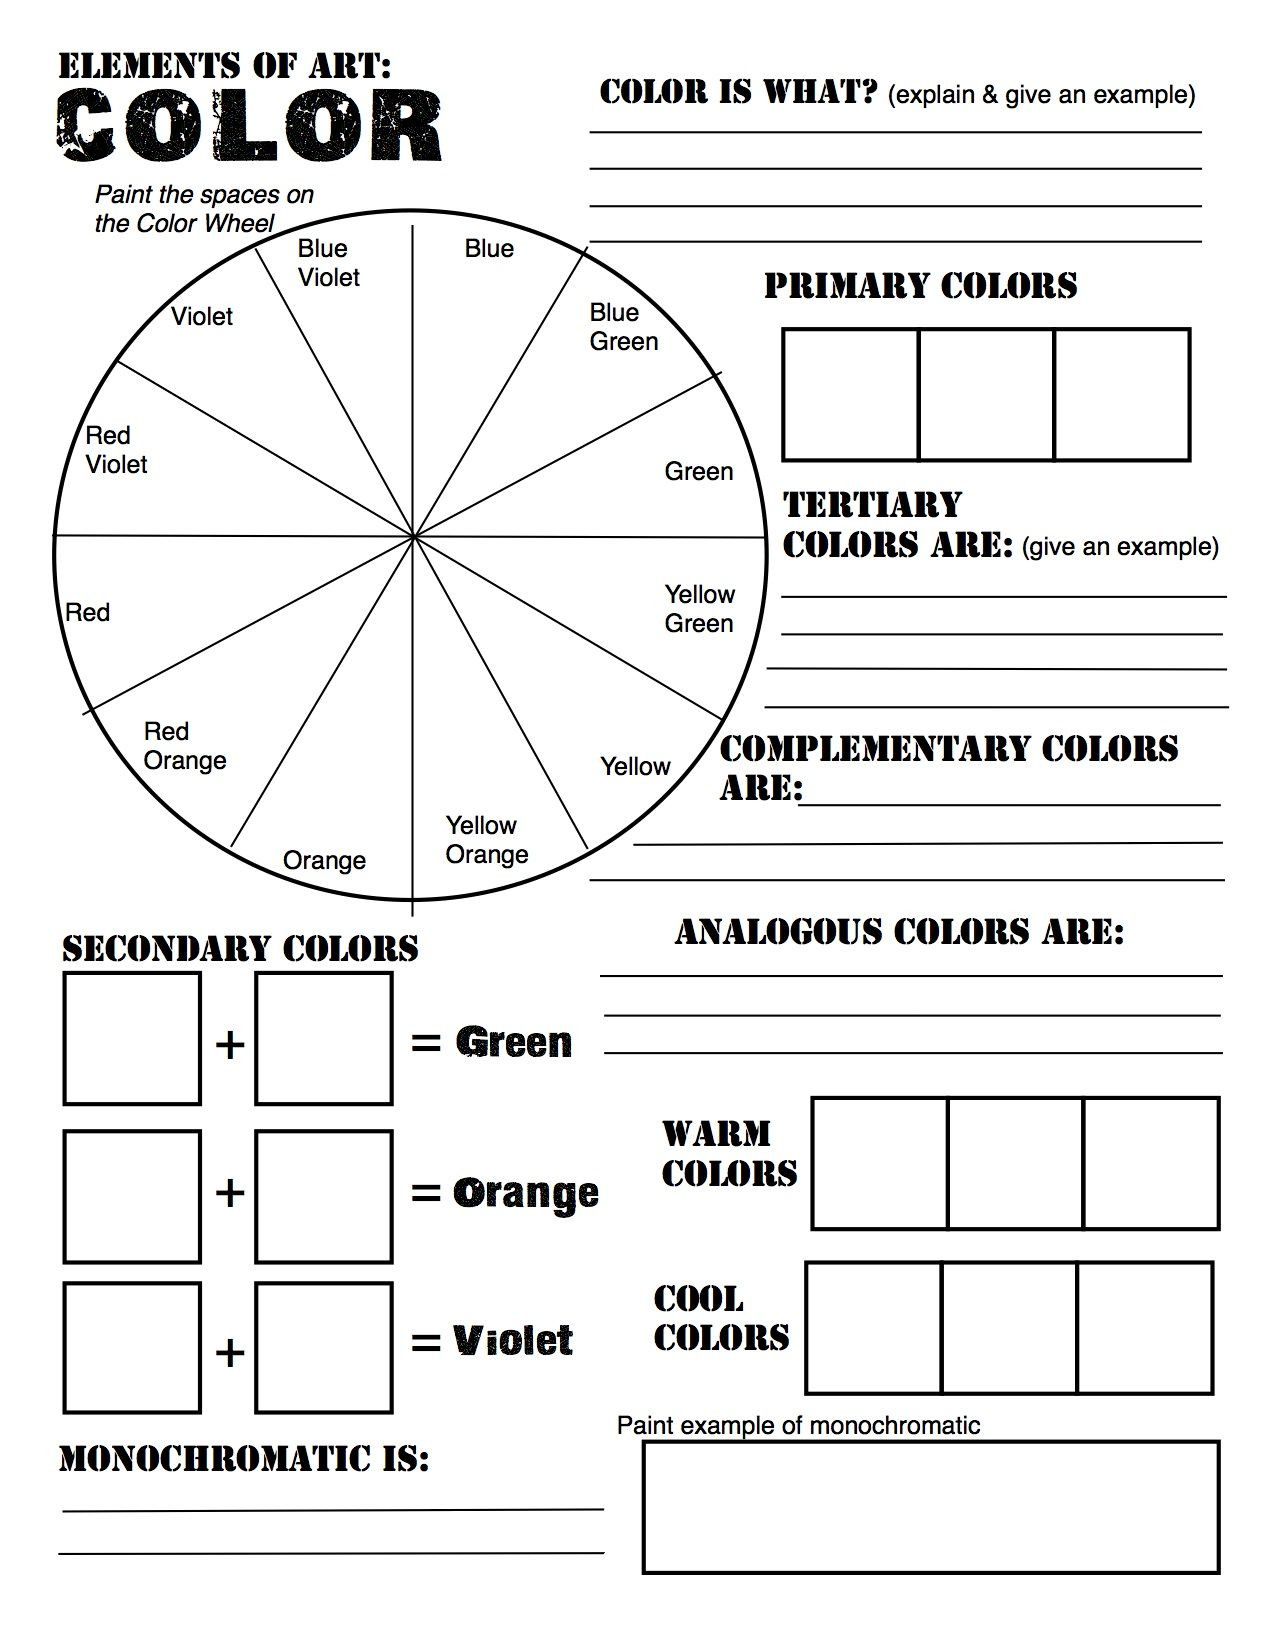 Middle School Art Worksheets Free Elements Of Art Color Wheel Worksheet and Lesson